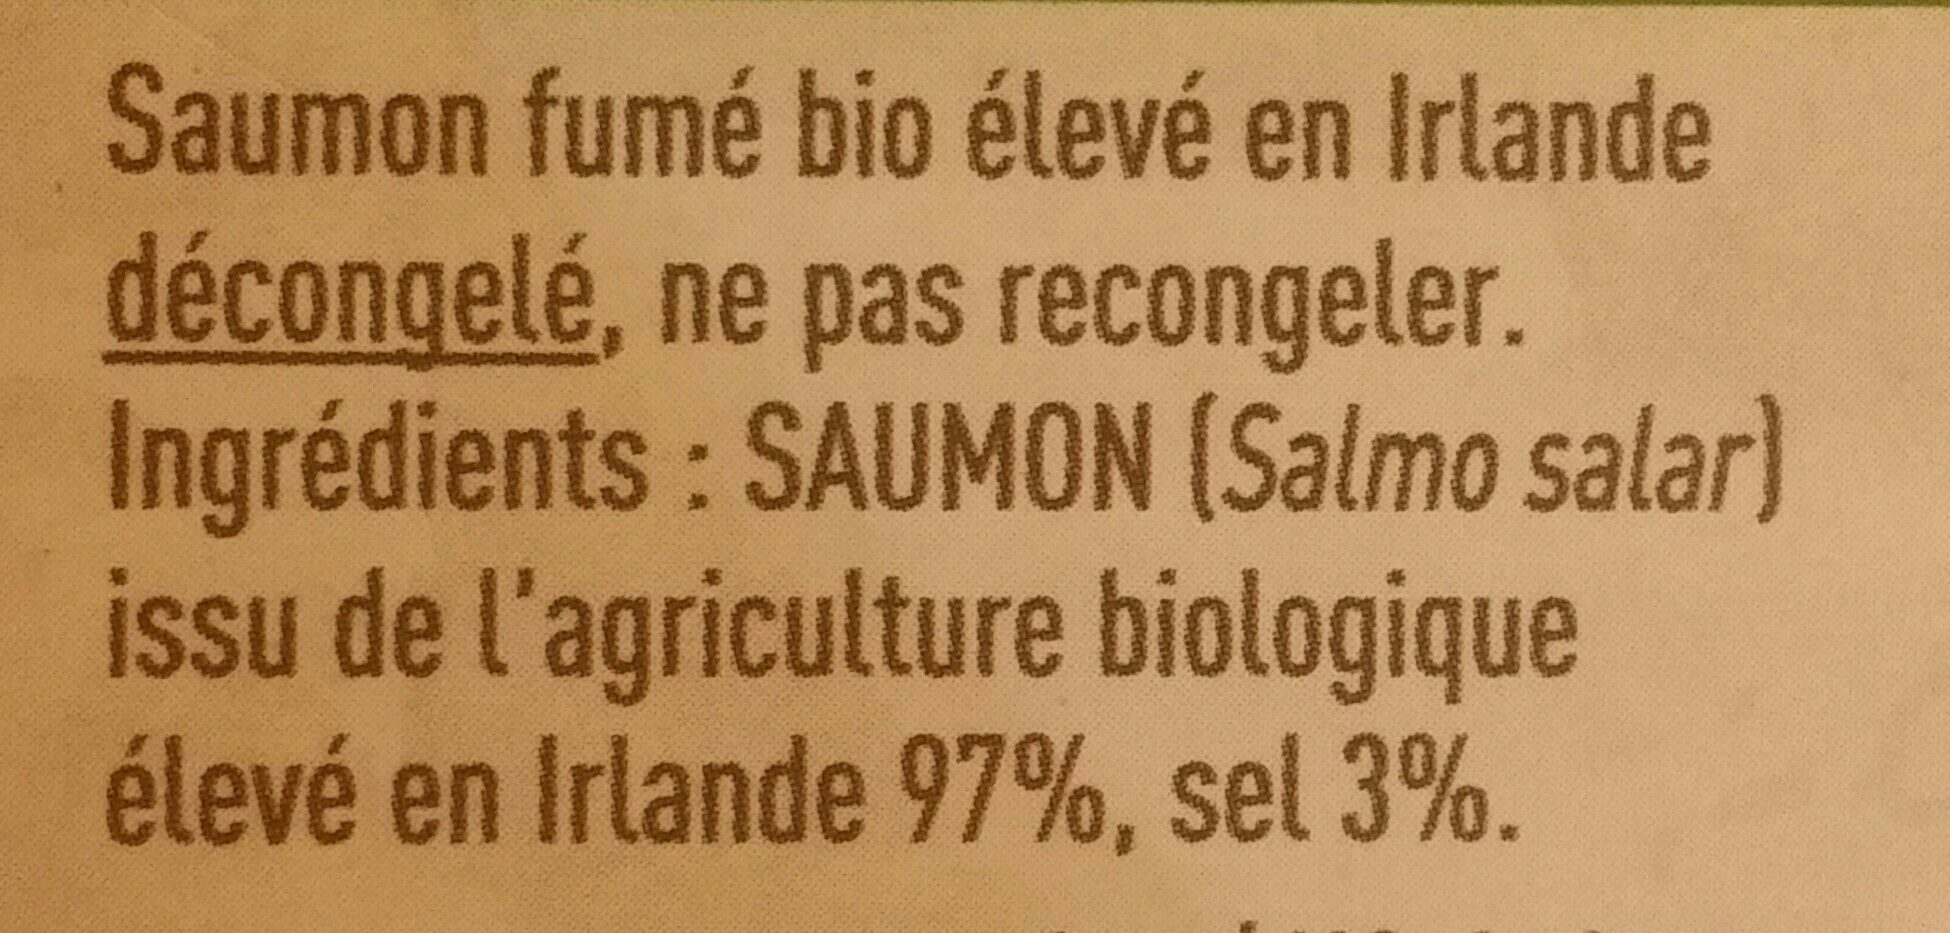 Saumon Fumé Bio Irlande - Ingredients